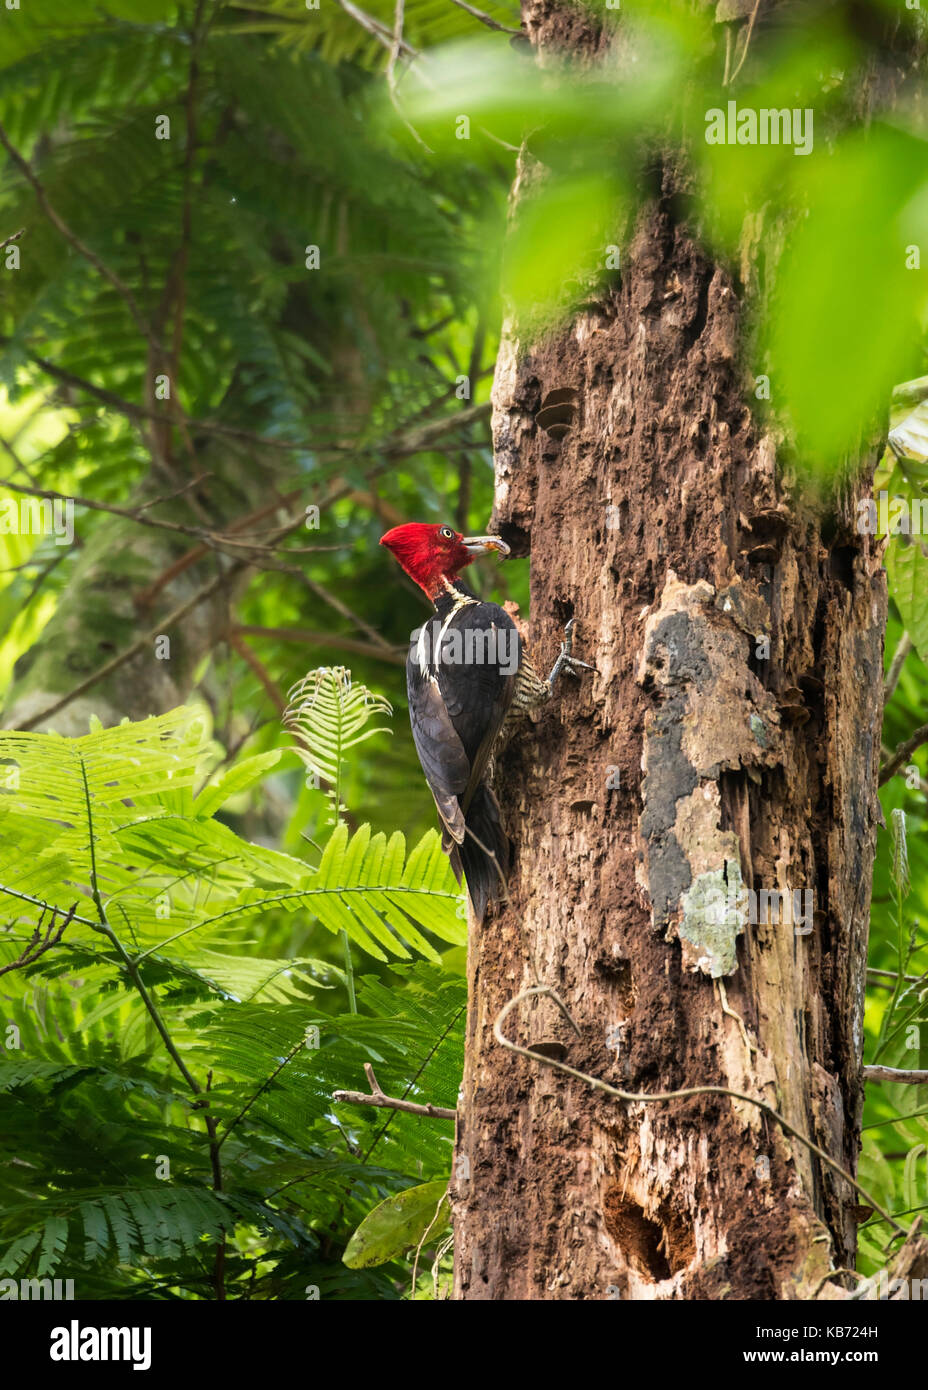 Male Pale-billed Woodpecker (Campephilus guatemalensis) picking a larva from a hole in a rotten tree in the forest, - Stock Image